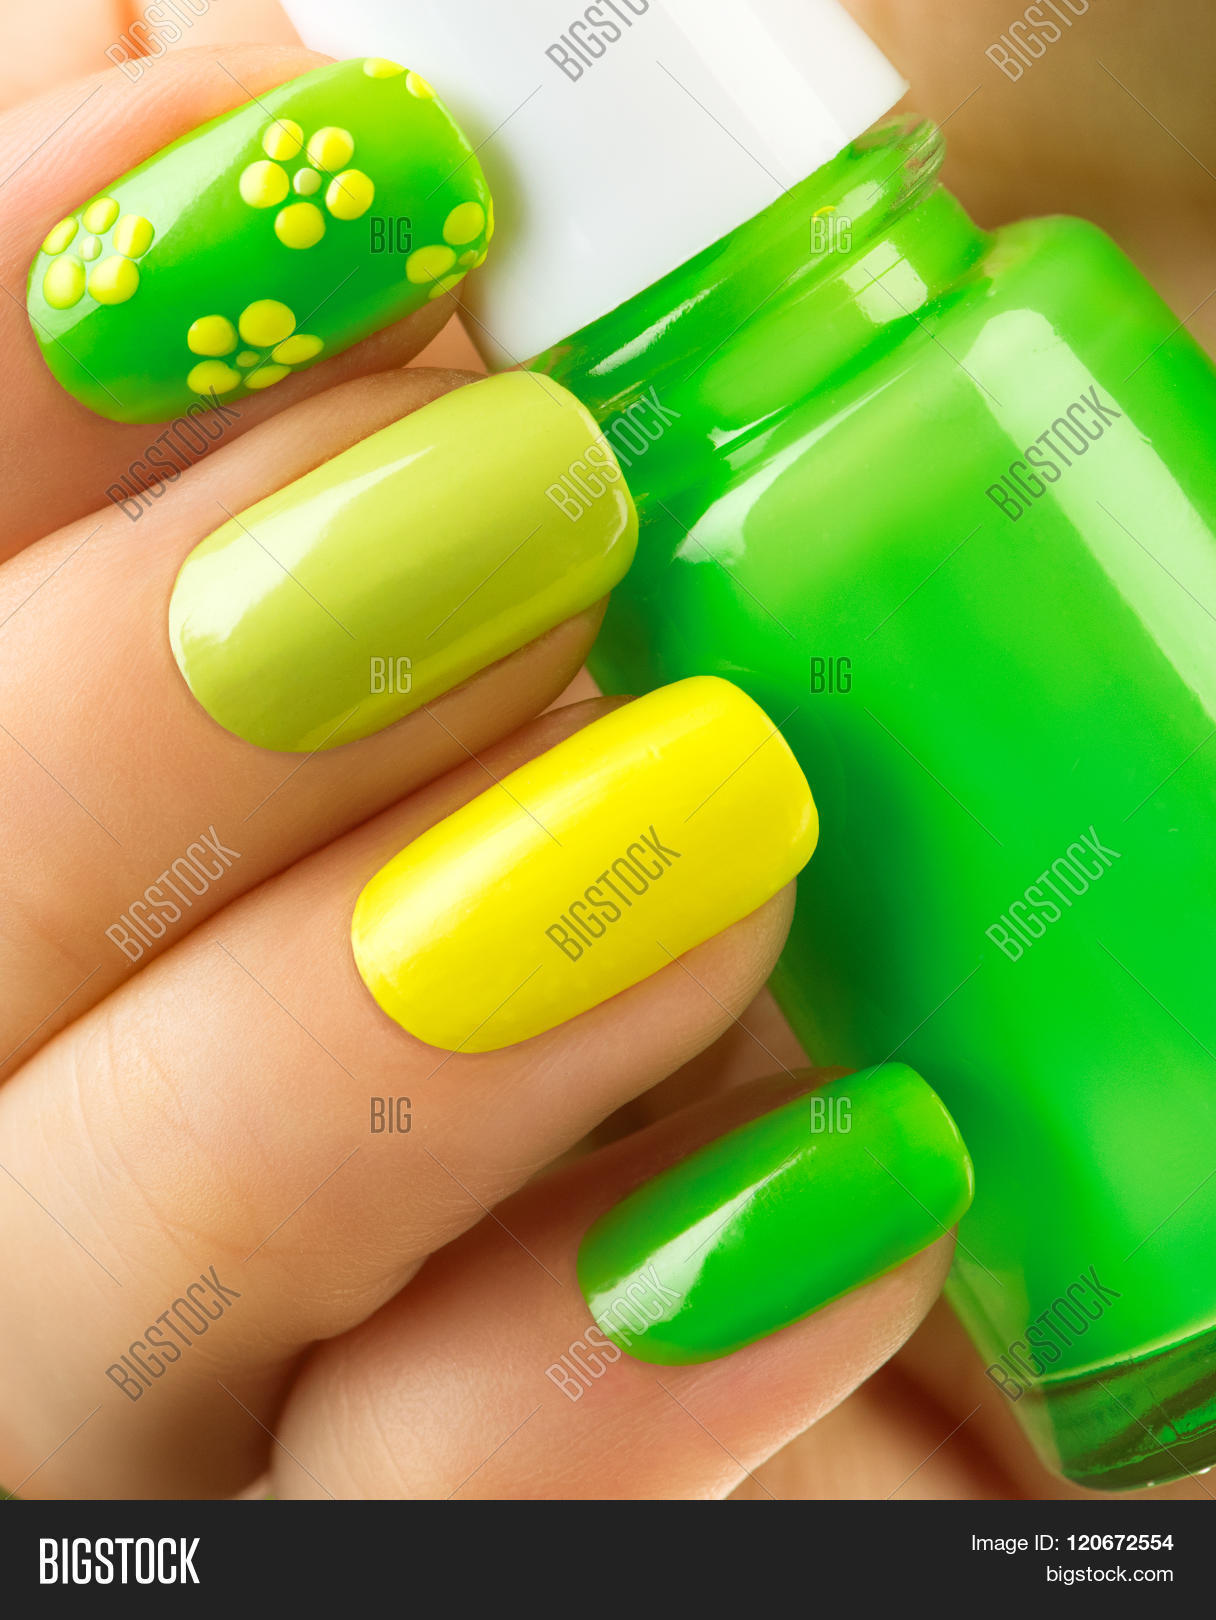 Spring Green Manicure Image & Photo (Free Trial) | Bigstock